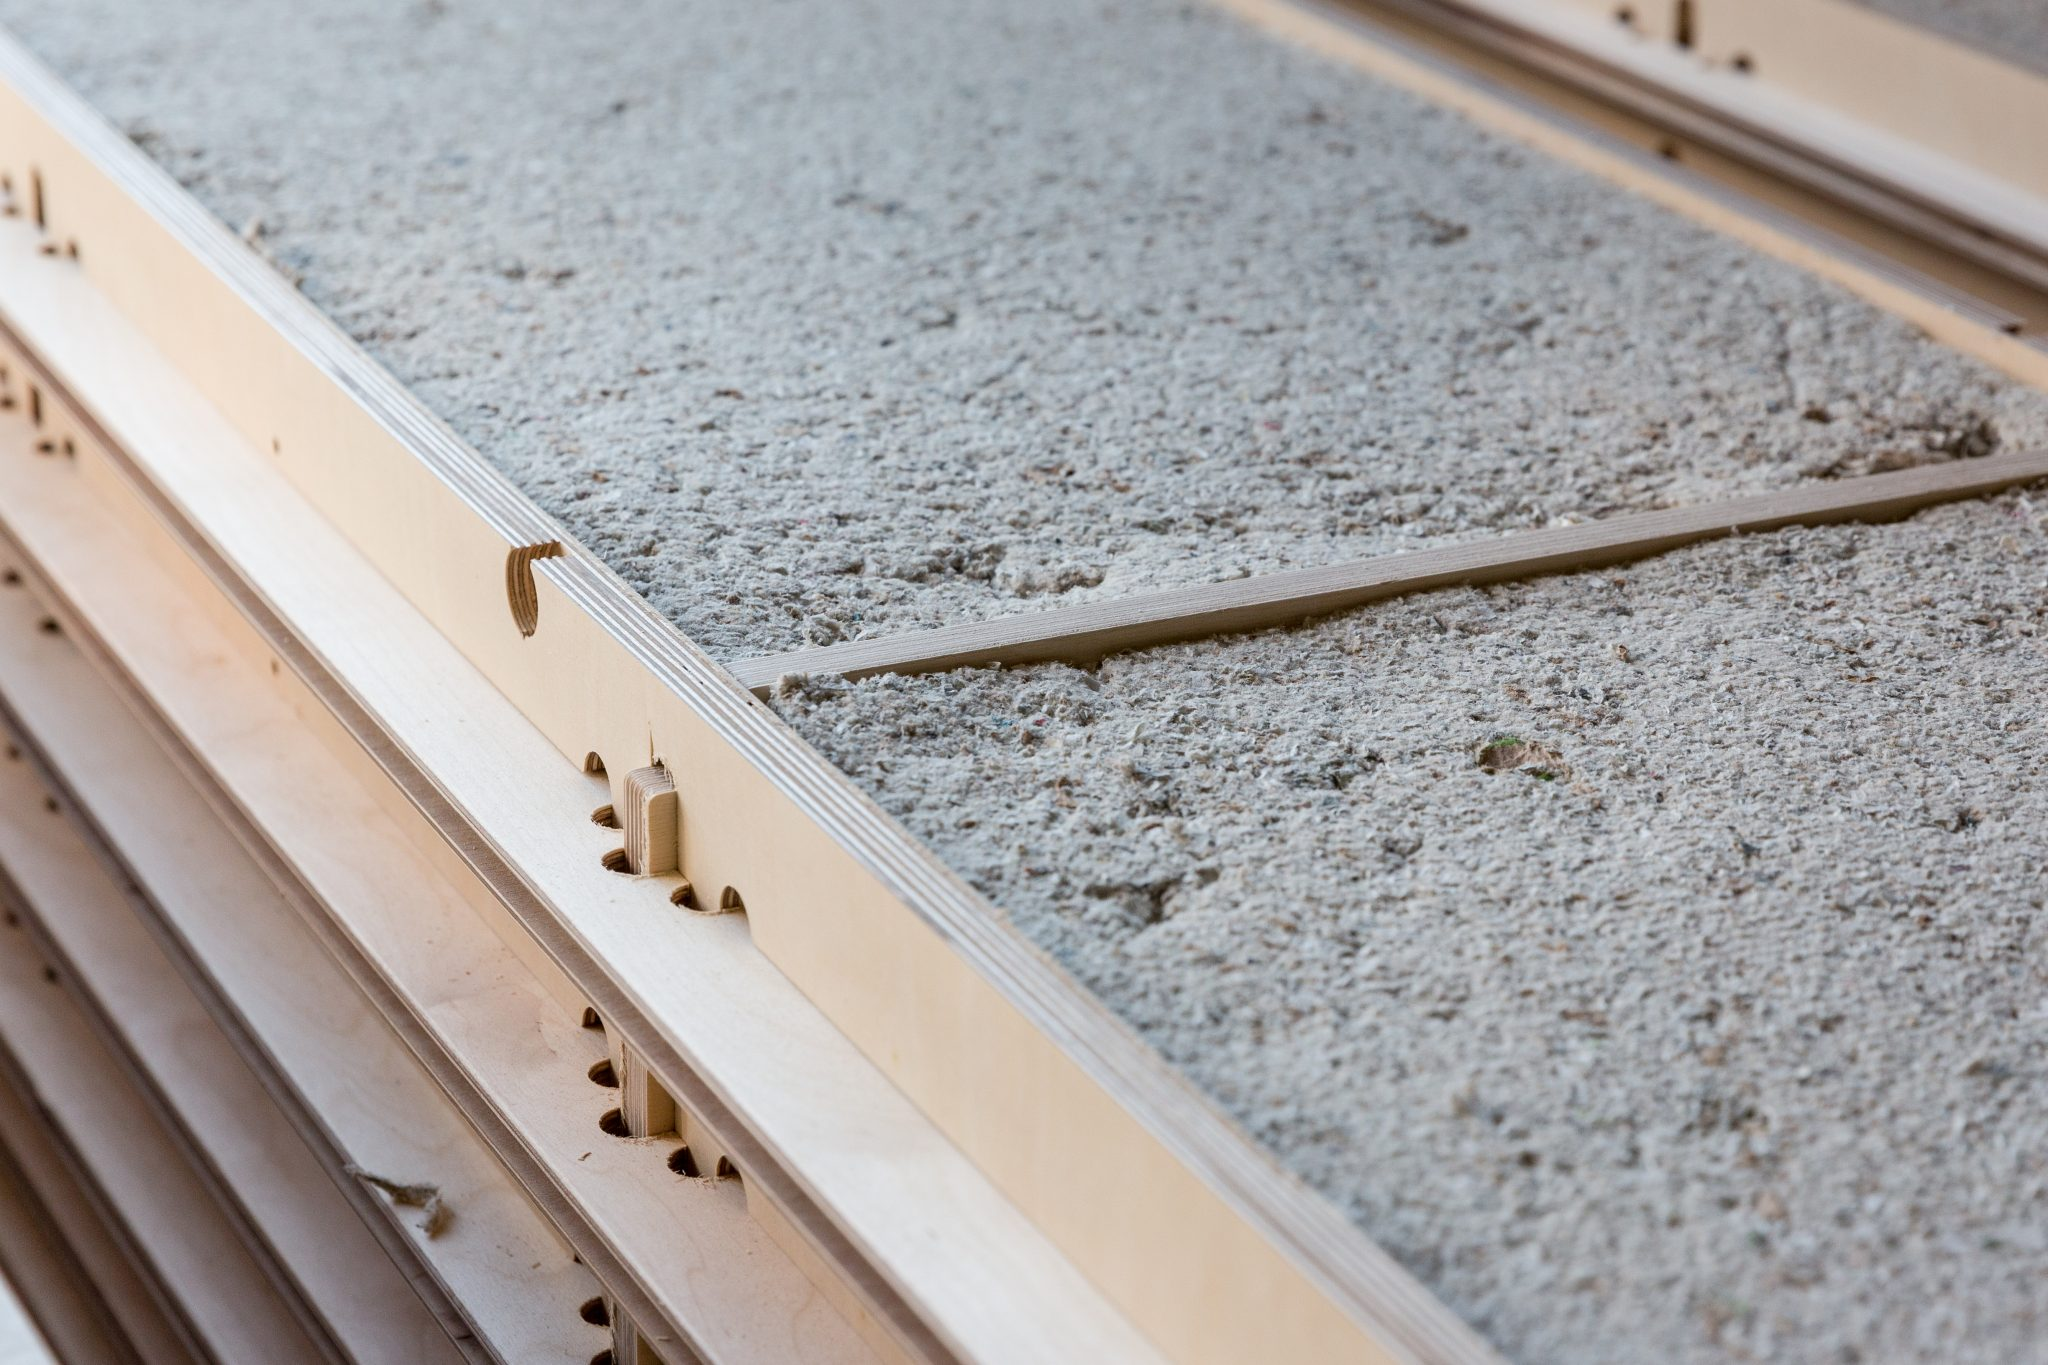 To meet building standards we carefully select and design with bio-based building materials. here glutex insulation